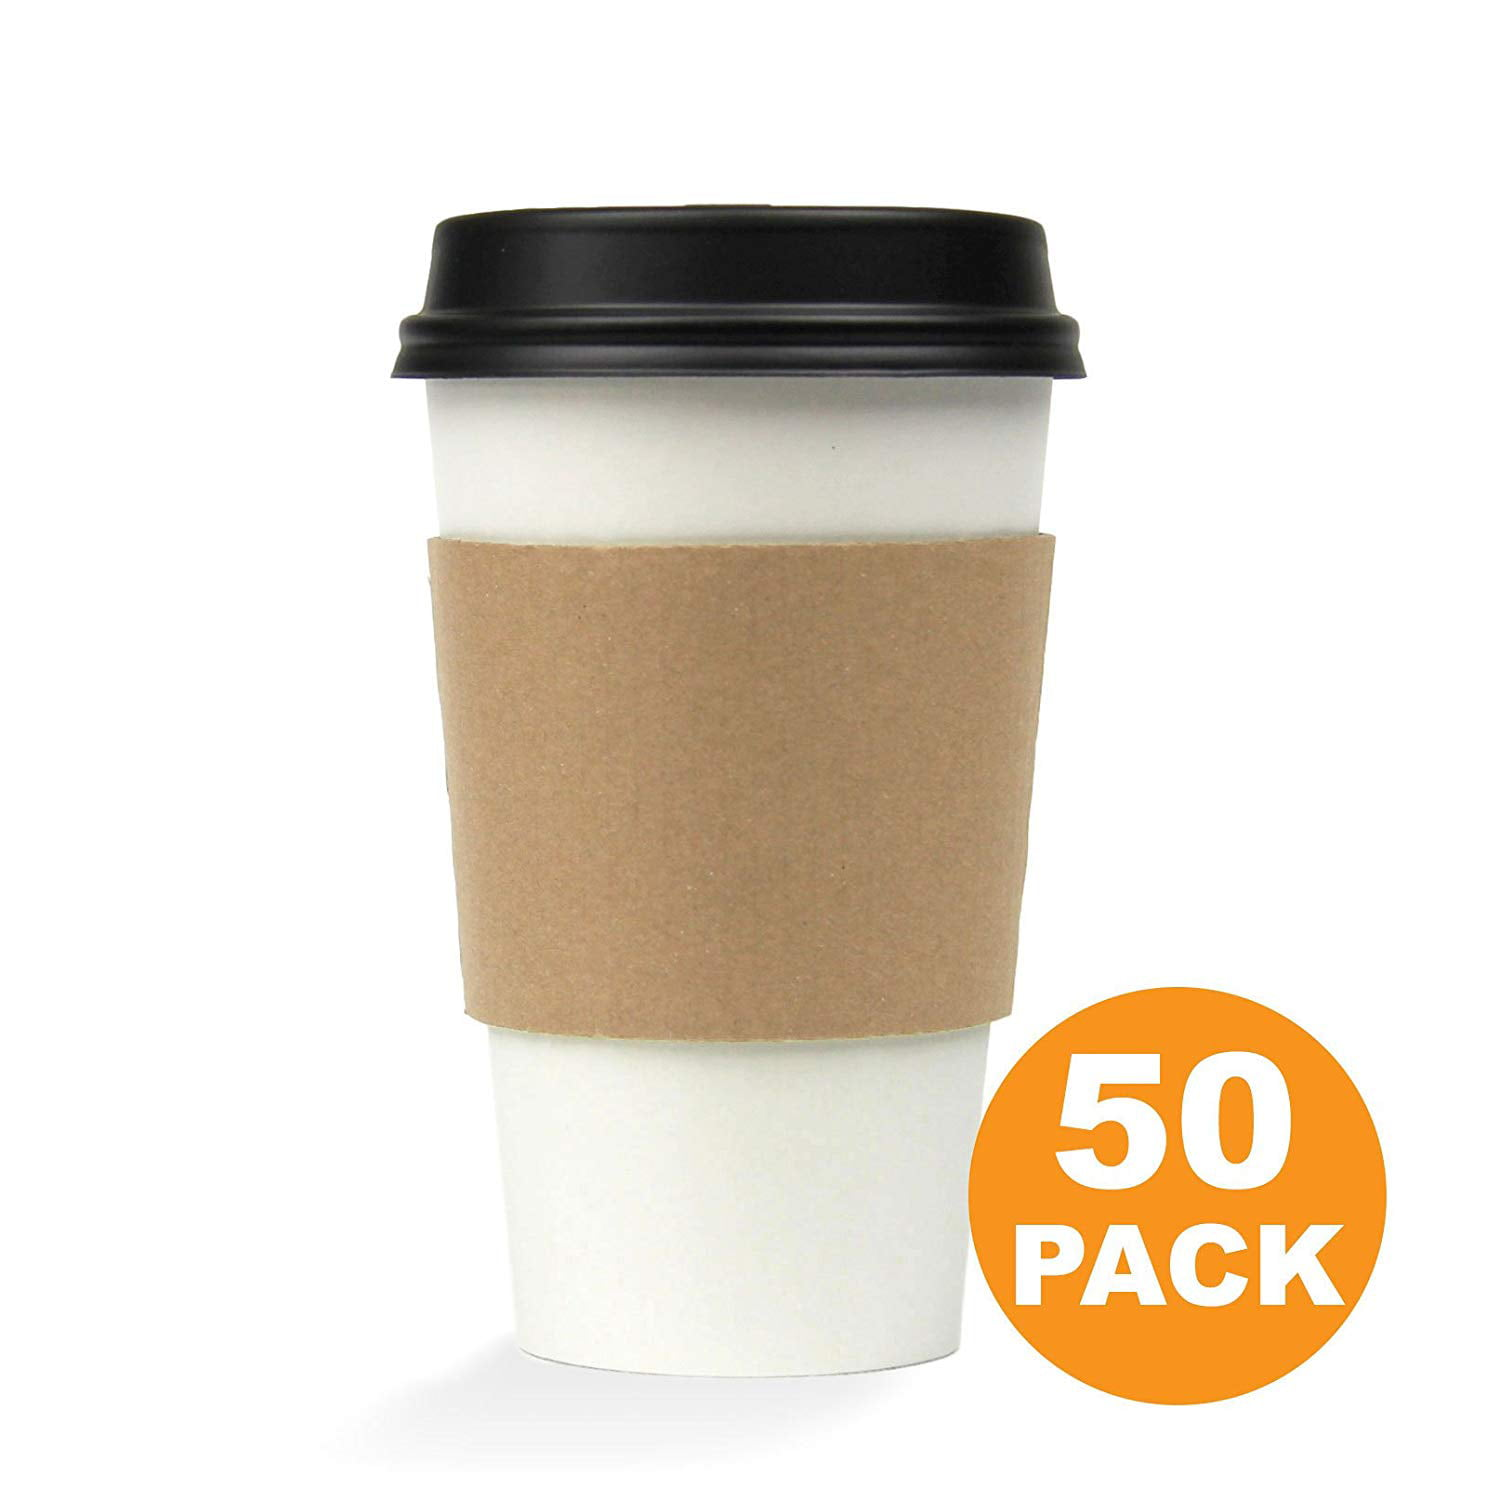 16 OZ Hot Beverage Disposable Paper Coffee Cup with Lid and Sleeve Combo, White Black Kraft, Medium Grande [50... by